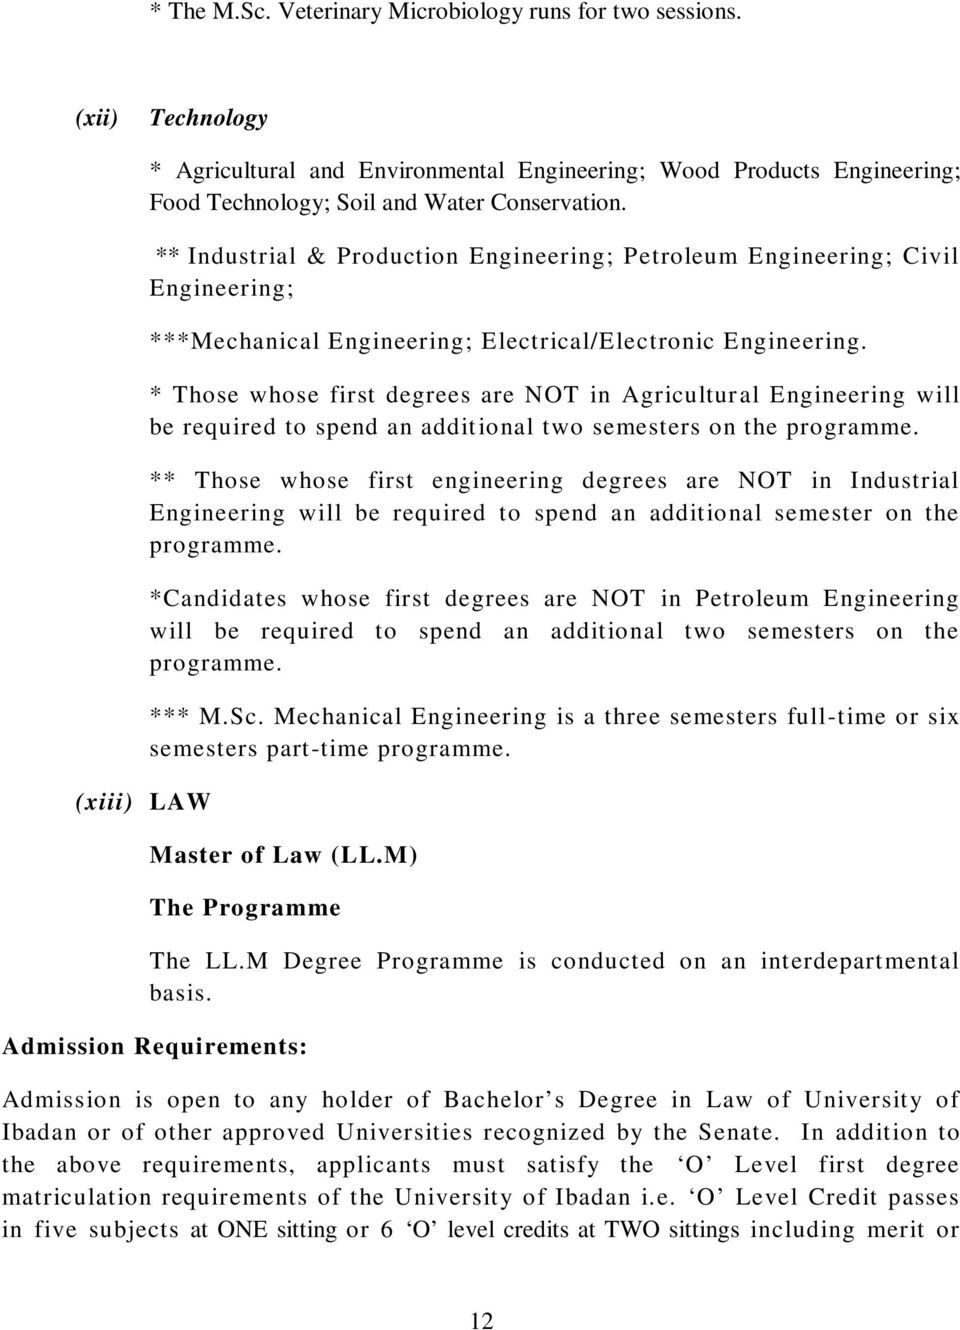 phd thesis industrial engineering Department of industrial and enterprise systems engineering fall and spring semester ms and phd industrial engineering students must register for ie 590 ms and phd stage iii: stage iii of the phd program consists of a minimum of 32 hours of 599 thesis research credit, a written dissertation, and a final oral defense.